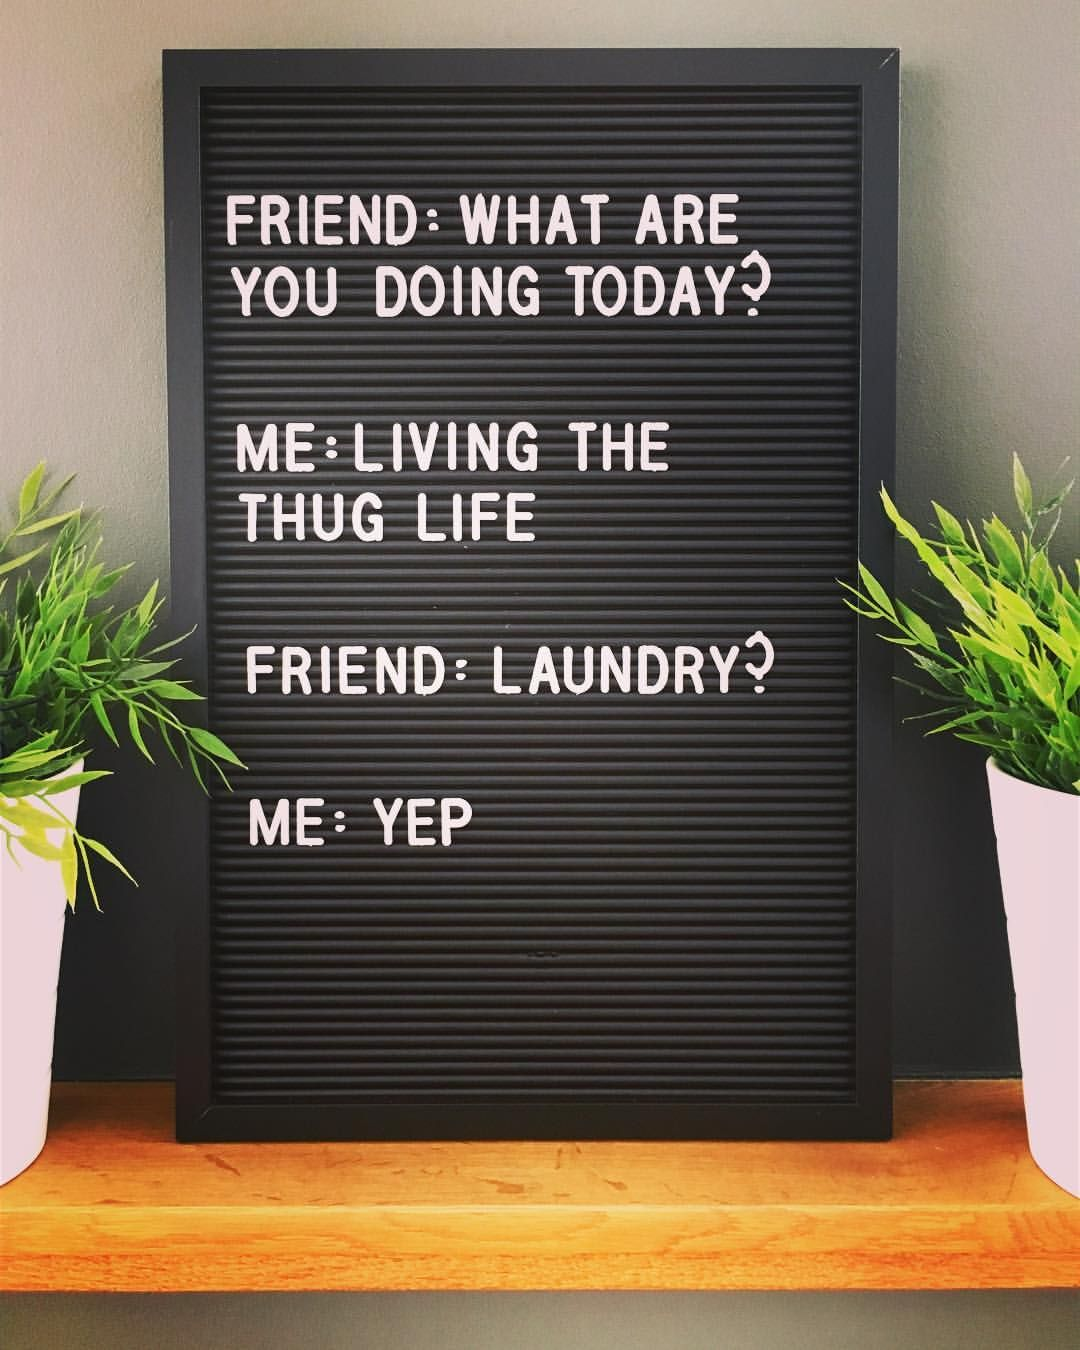 Raise Your Hand If You Re Living The Thug Life Too Quote Quotes Letterbox Letterboxquotes Sunday Humor Sunday Quotes Funny Laundry Quotes Funny